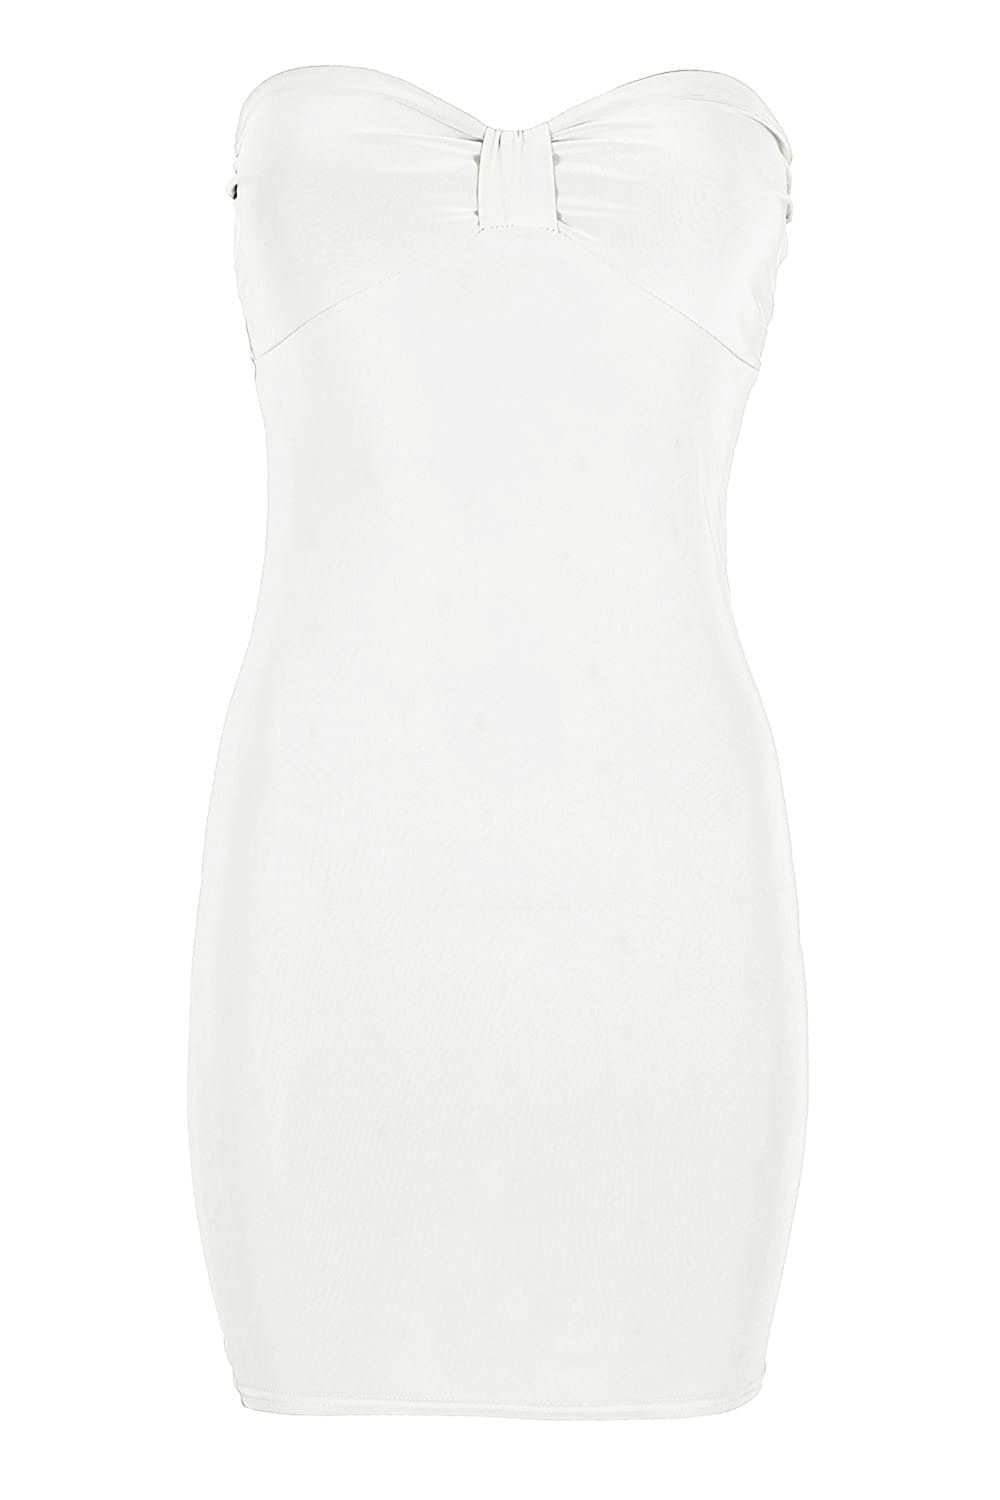 Oops Outlet Women's Bow Knot Front Stretchy Tunic Fitted Bodycon Mini Dress Top